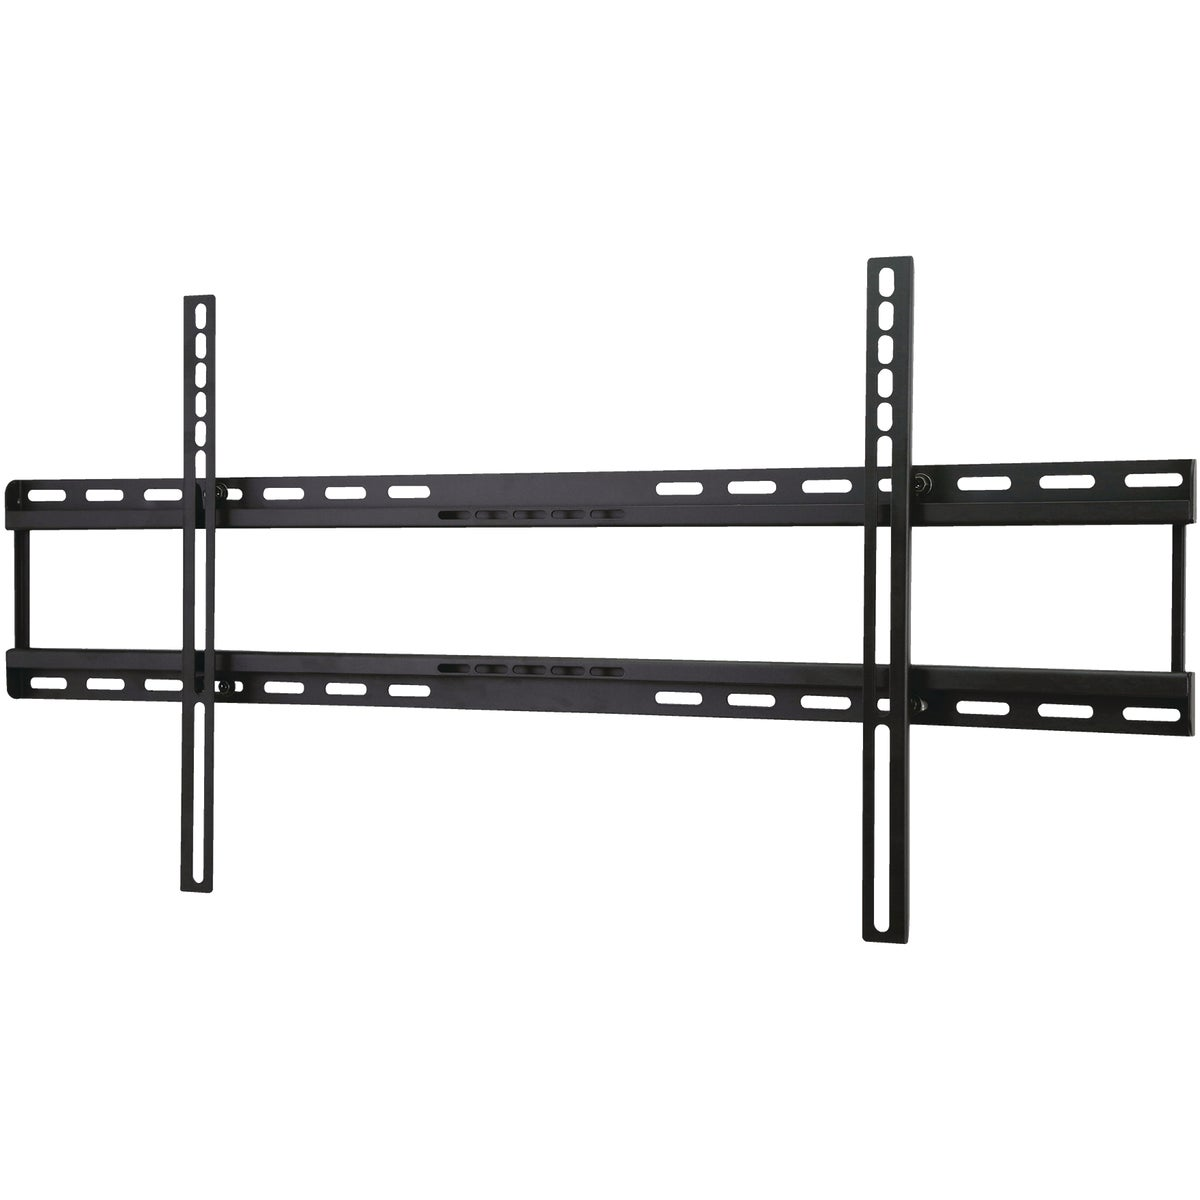 "32-65"" FLAT TV MOUNT - HSF665 by Peerless Industries"